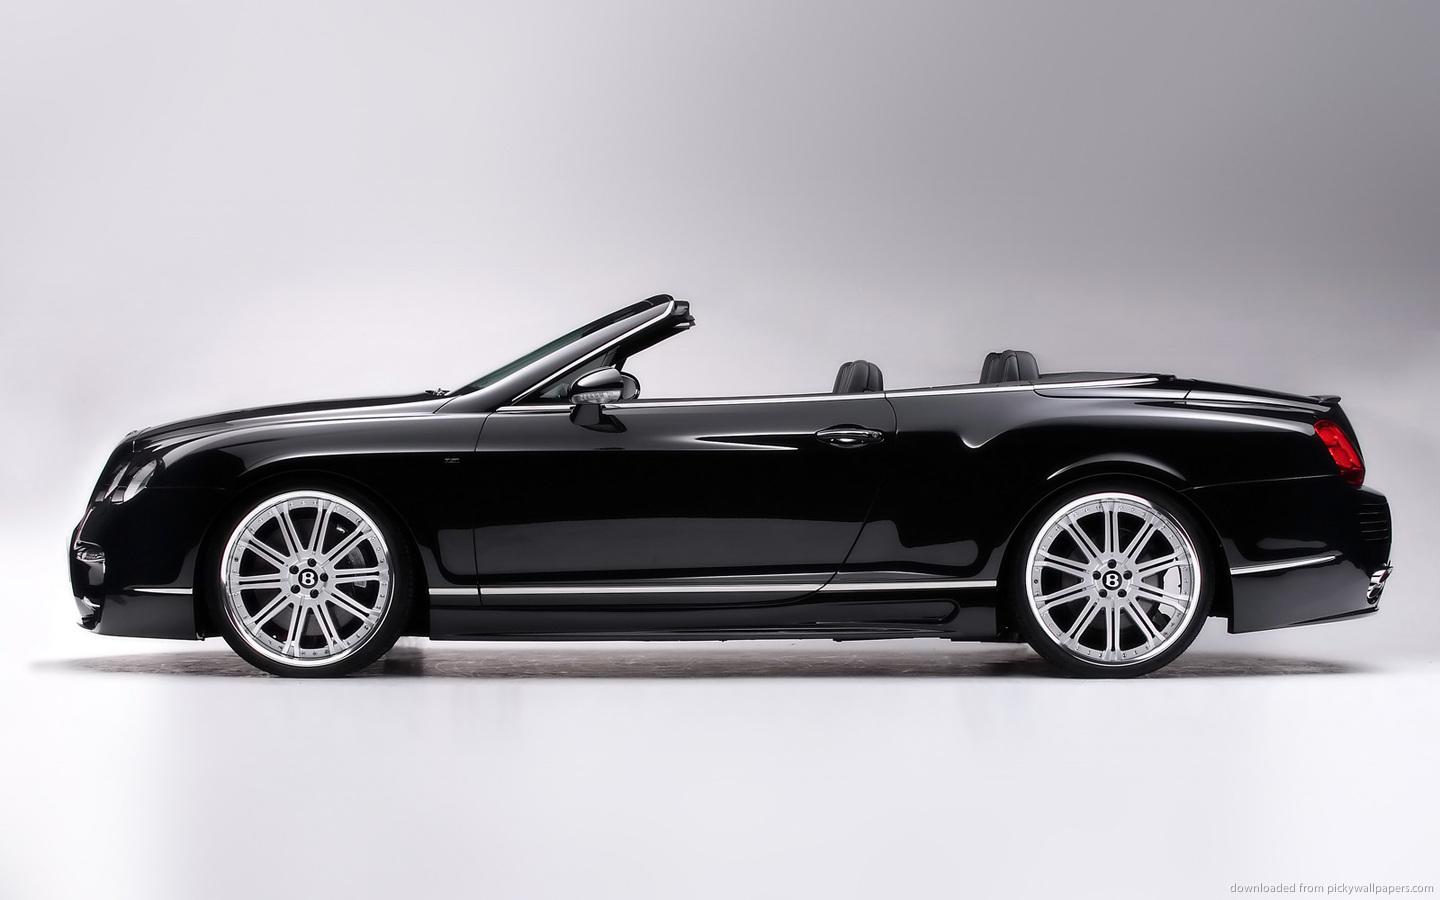 Black Bentley Continental ASI for Free Picture Download Image Of